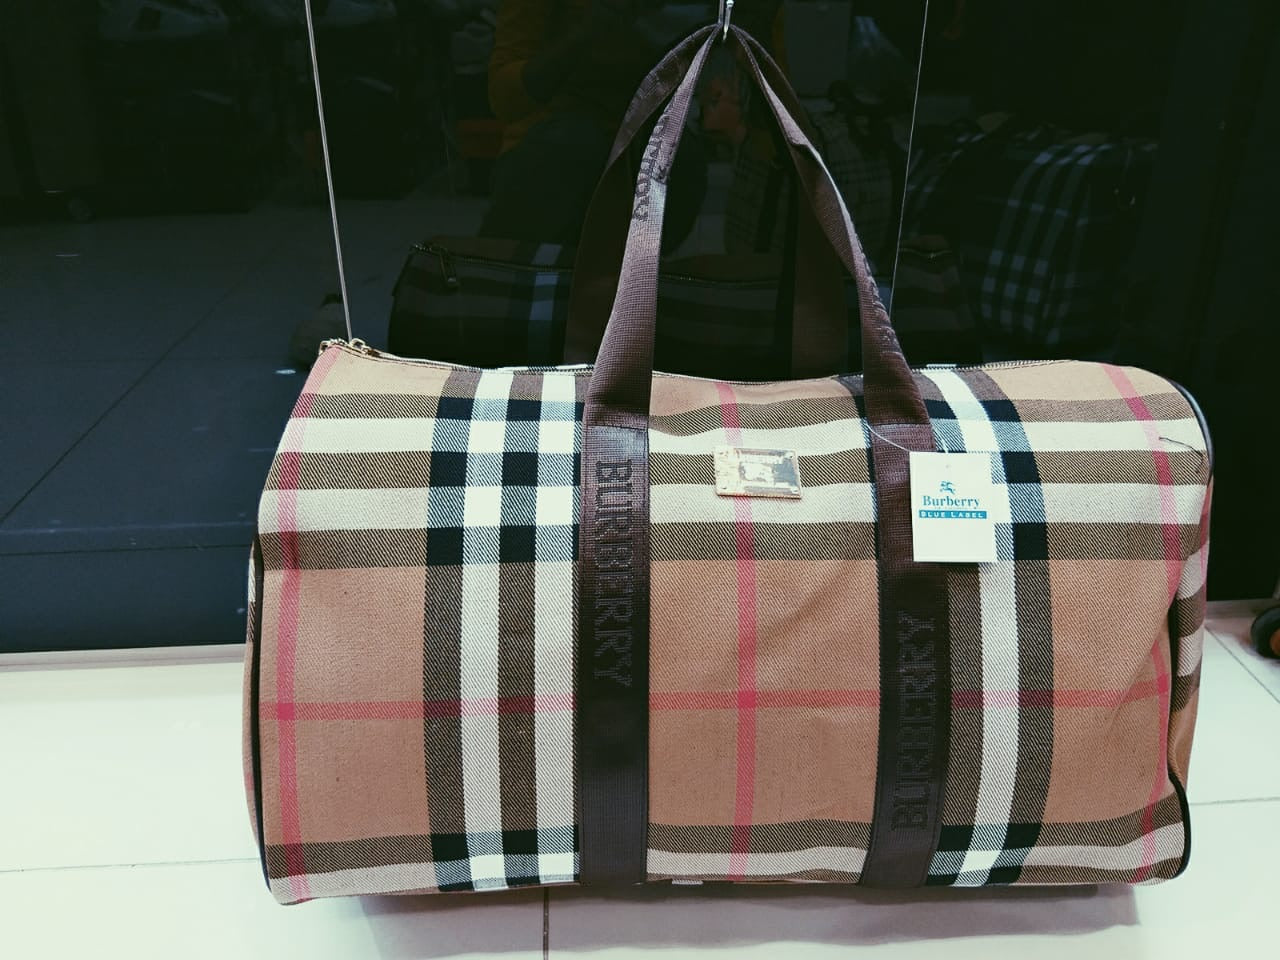 Burberry Designer Travel Bag